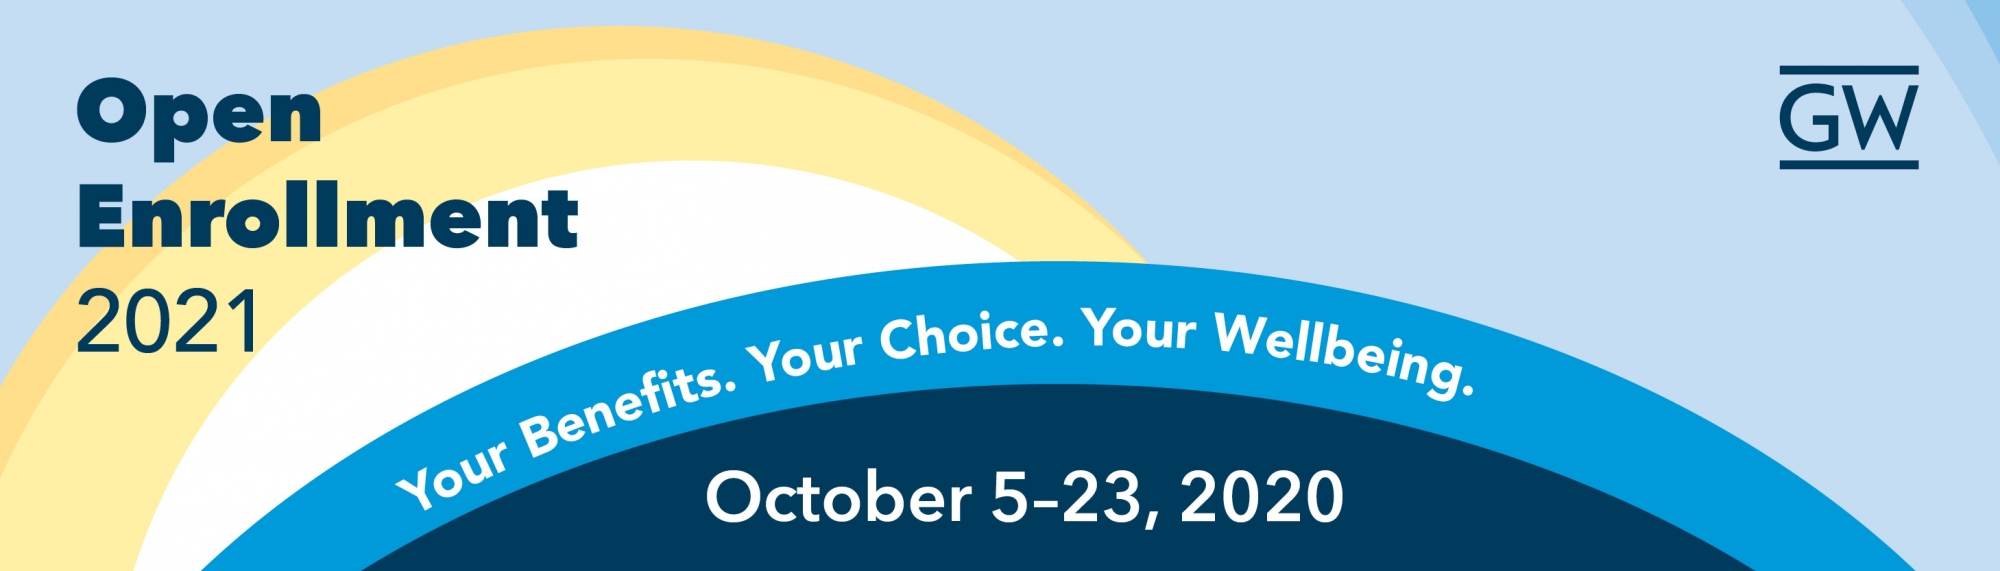 blue background with sun and text that says Open Enrollment Dates October 5 through 23